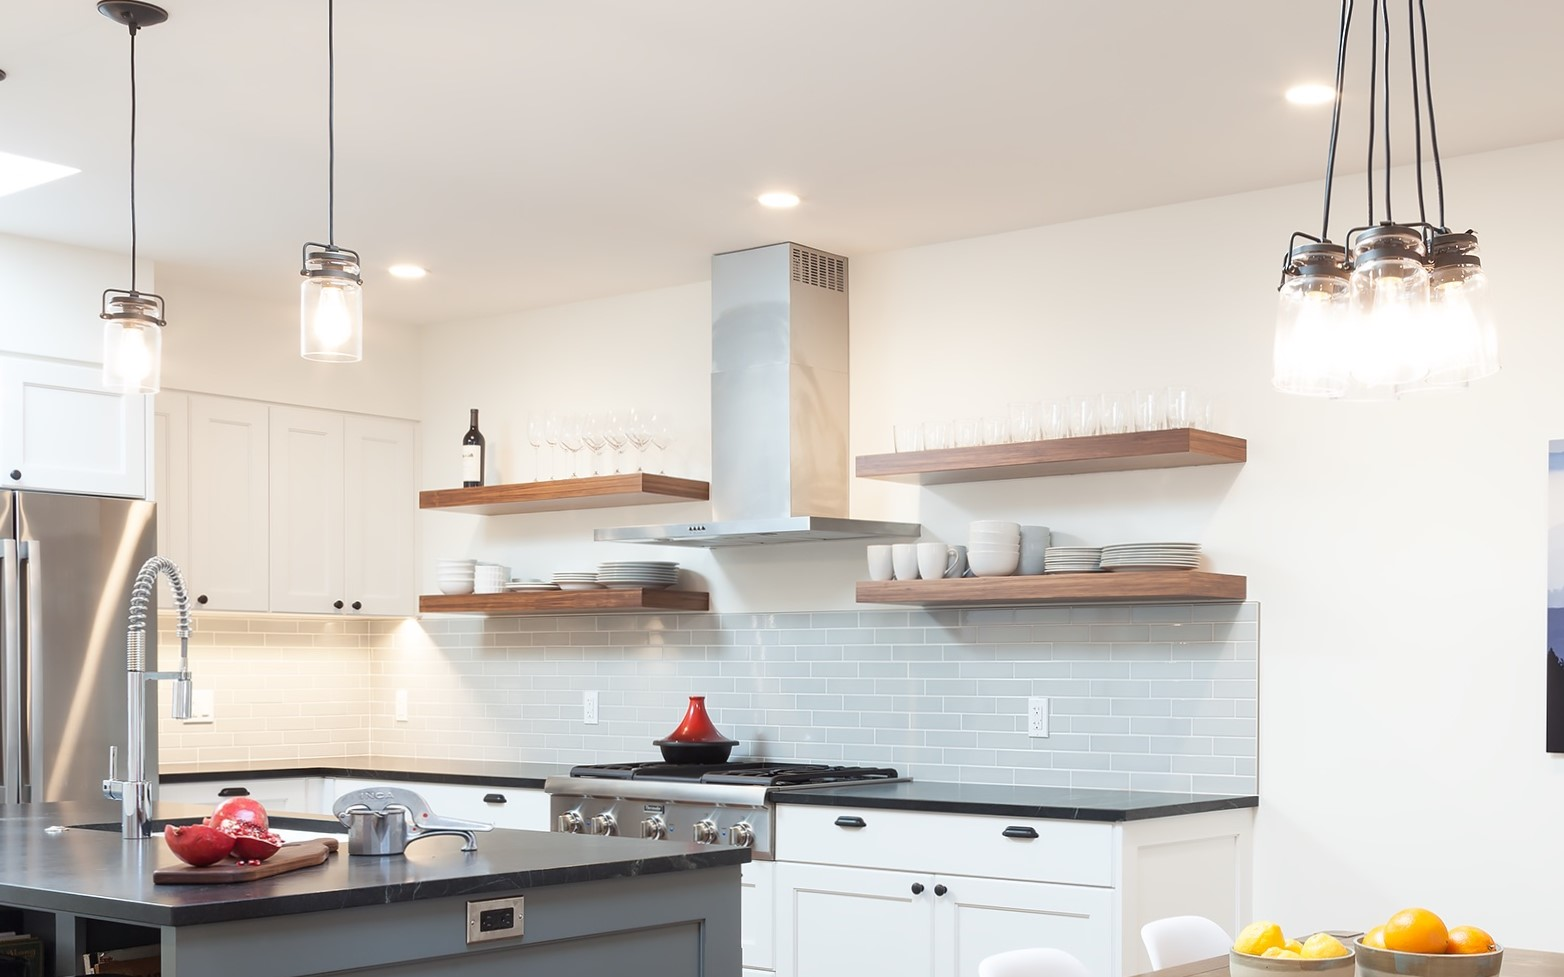 How To Make Floating Kitchen Shelves Work For Your Home